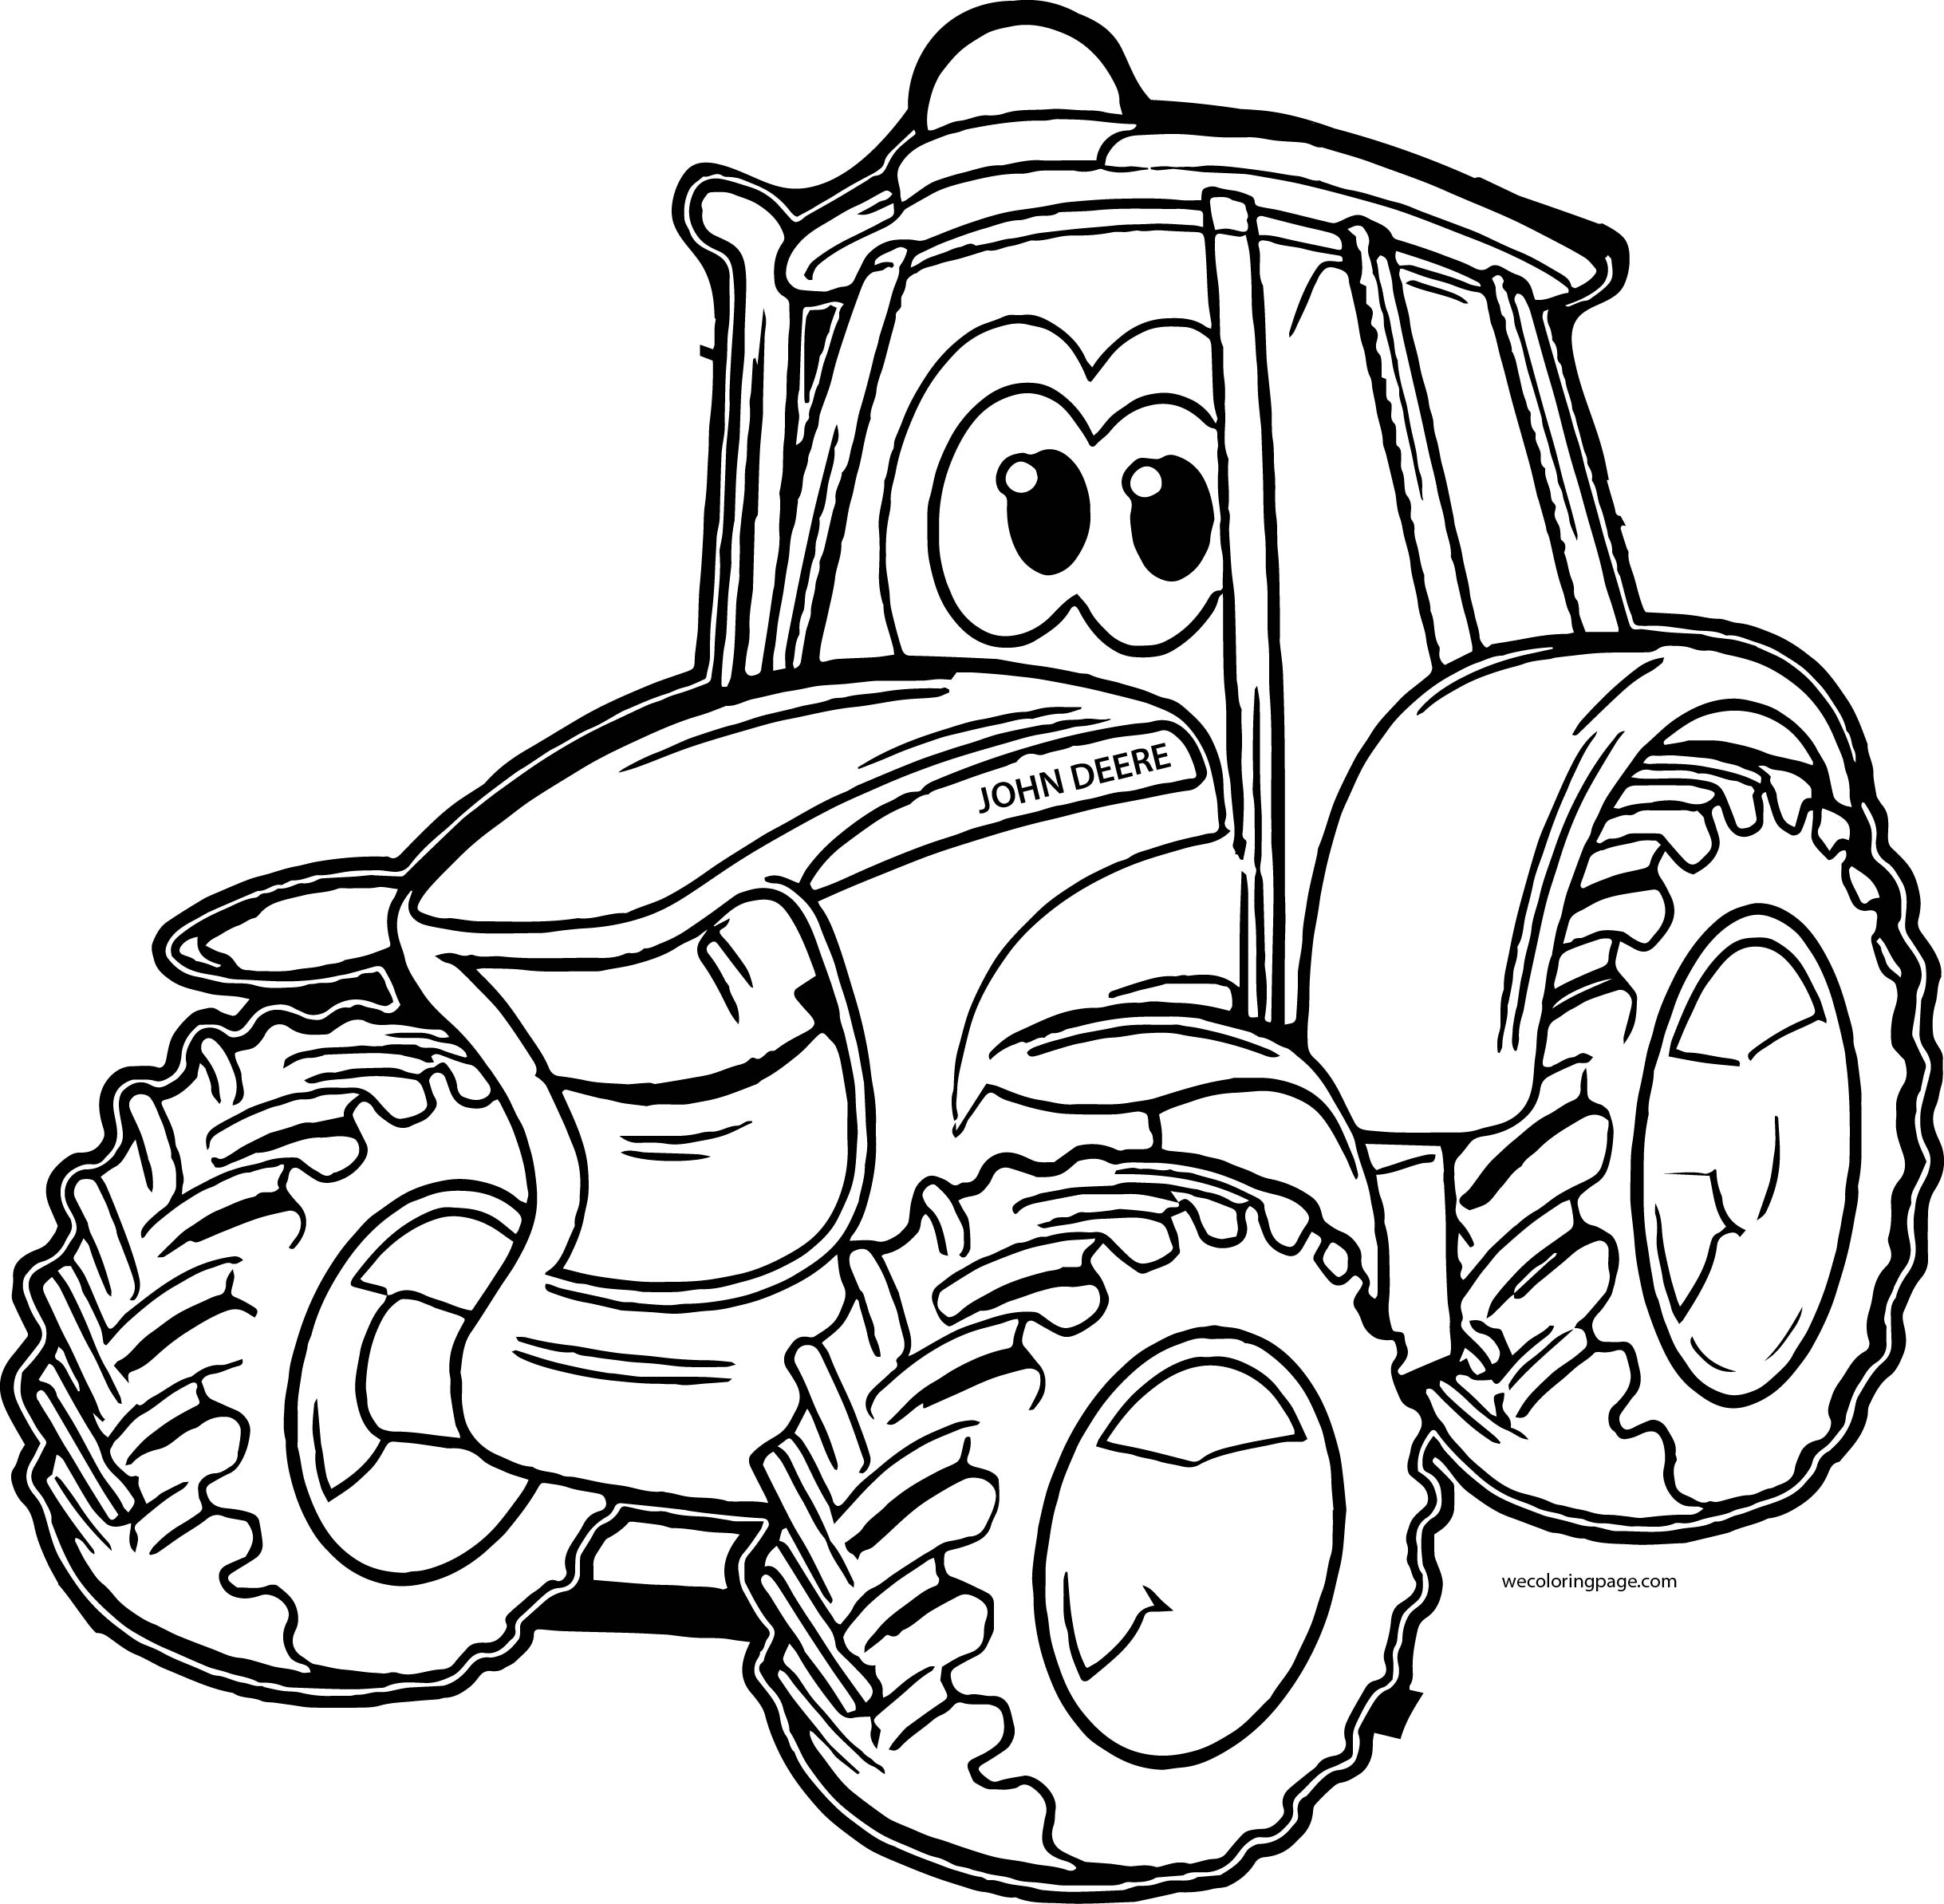 John Johnny Deere Tractor Coloring Pages | Wecoloringpage.com